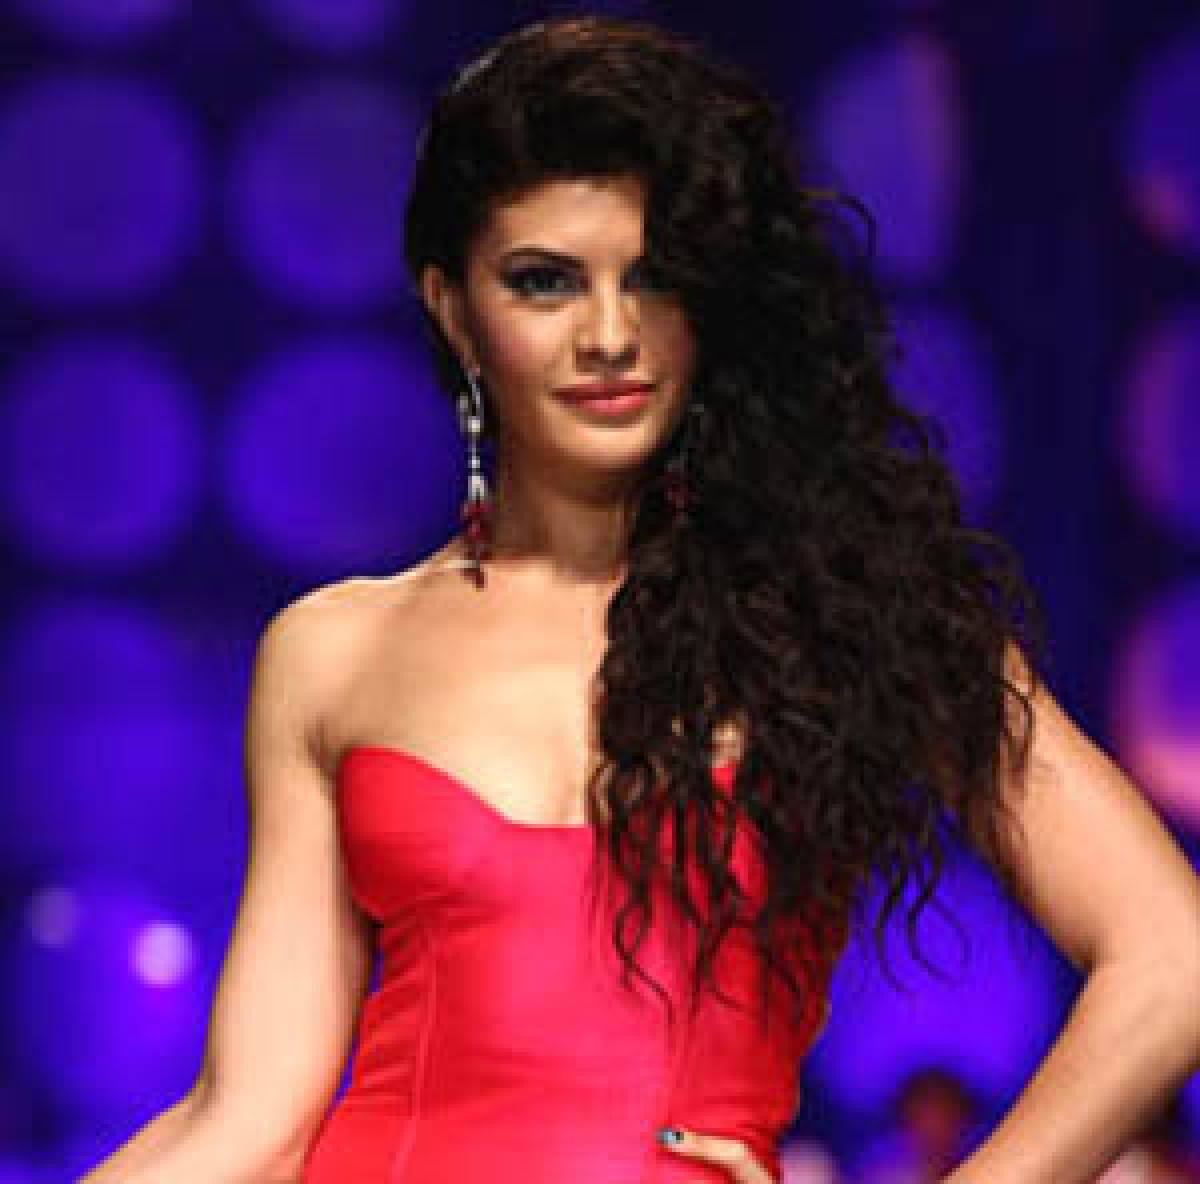 Survival in film industry tough, says Jacqueline